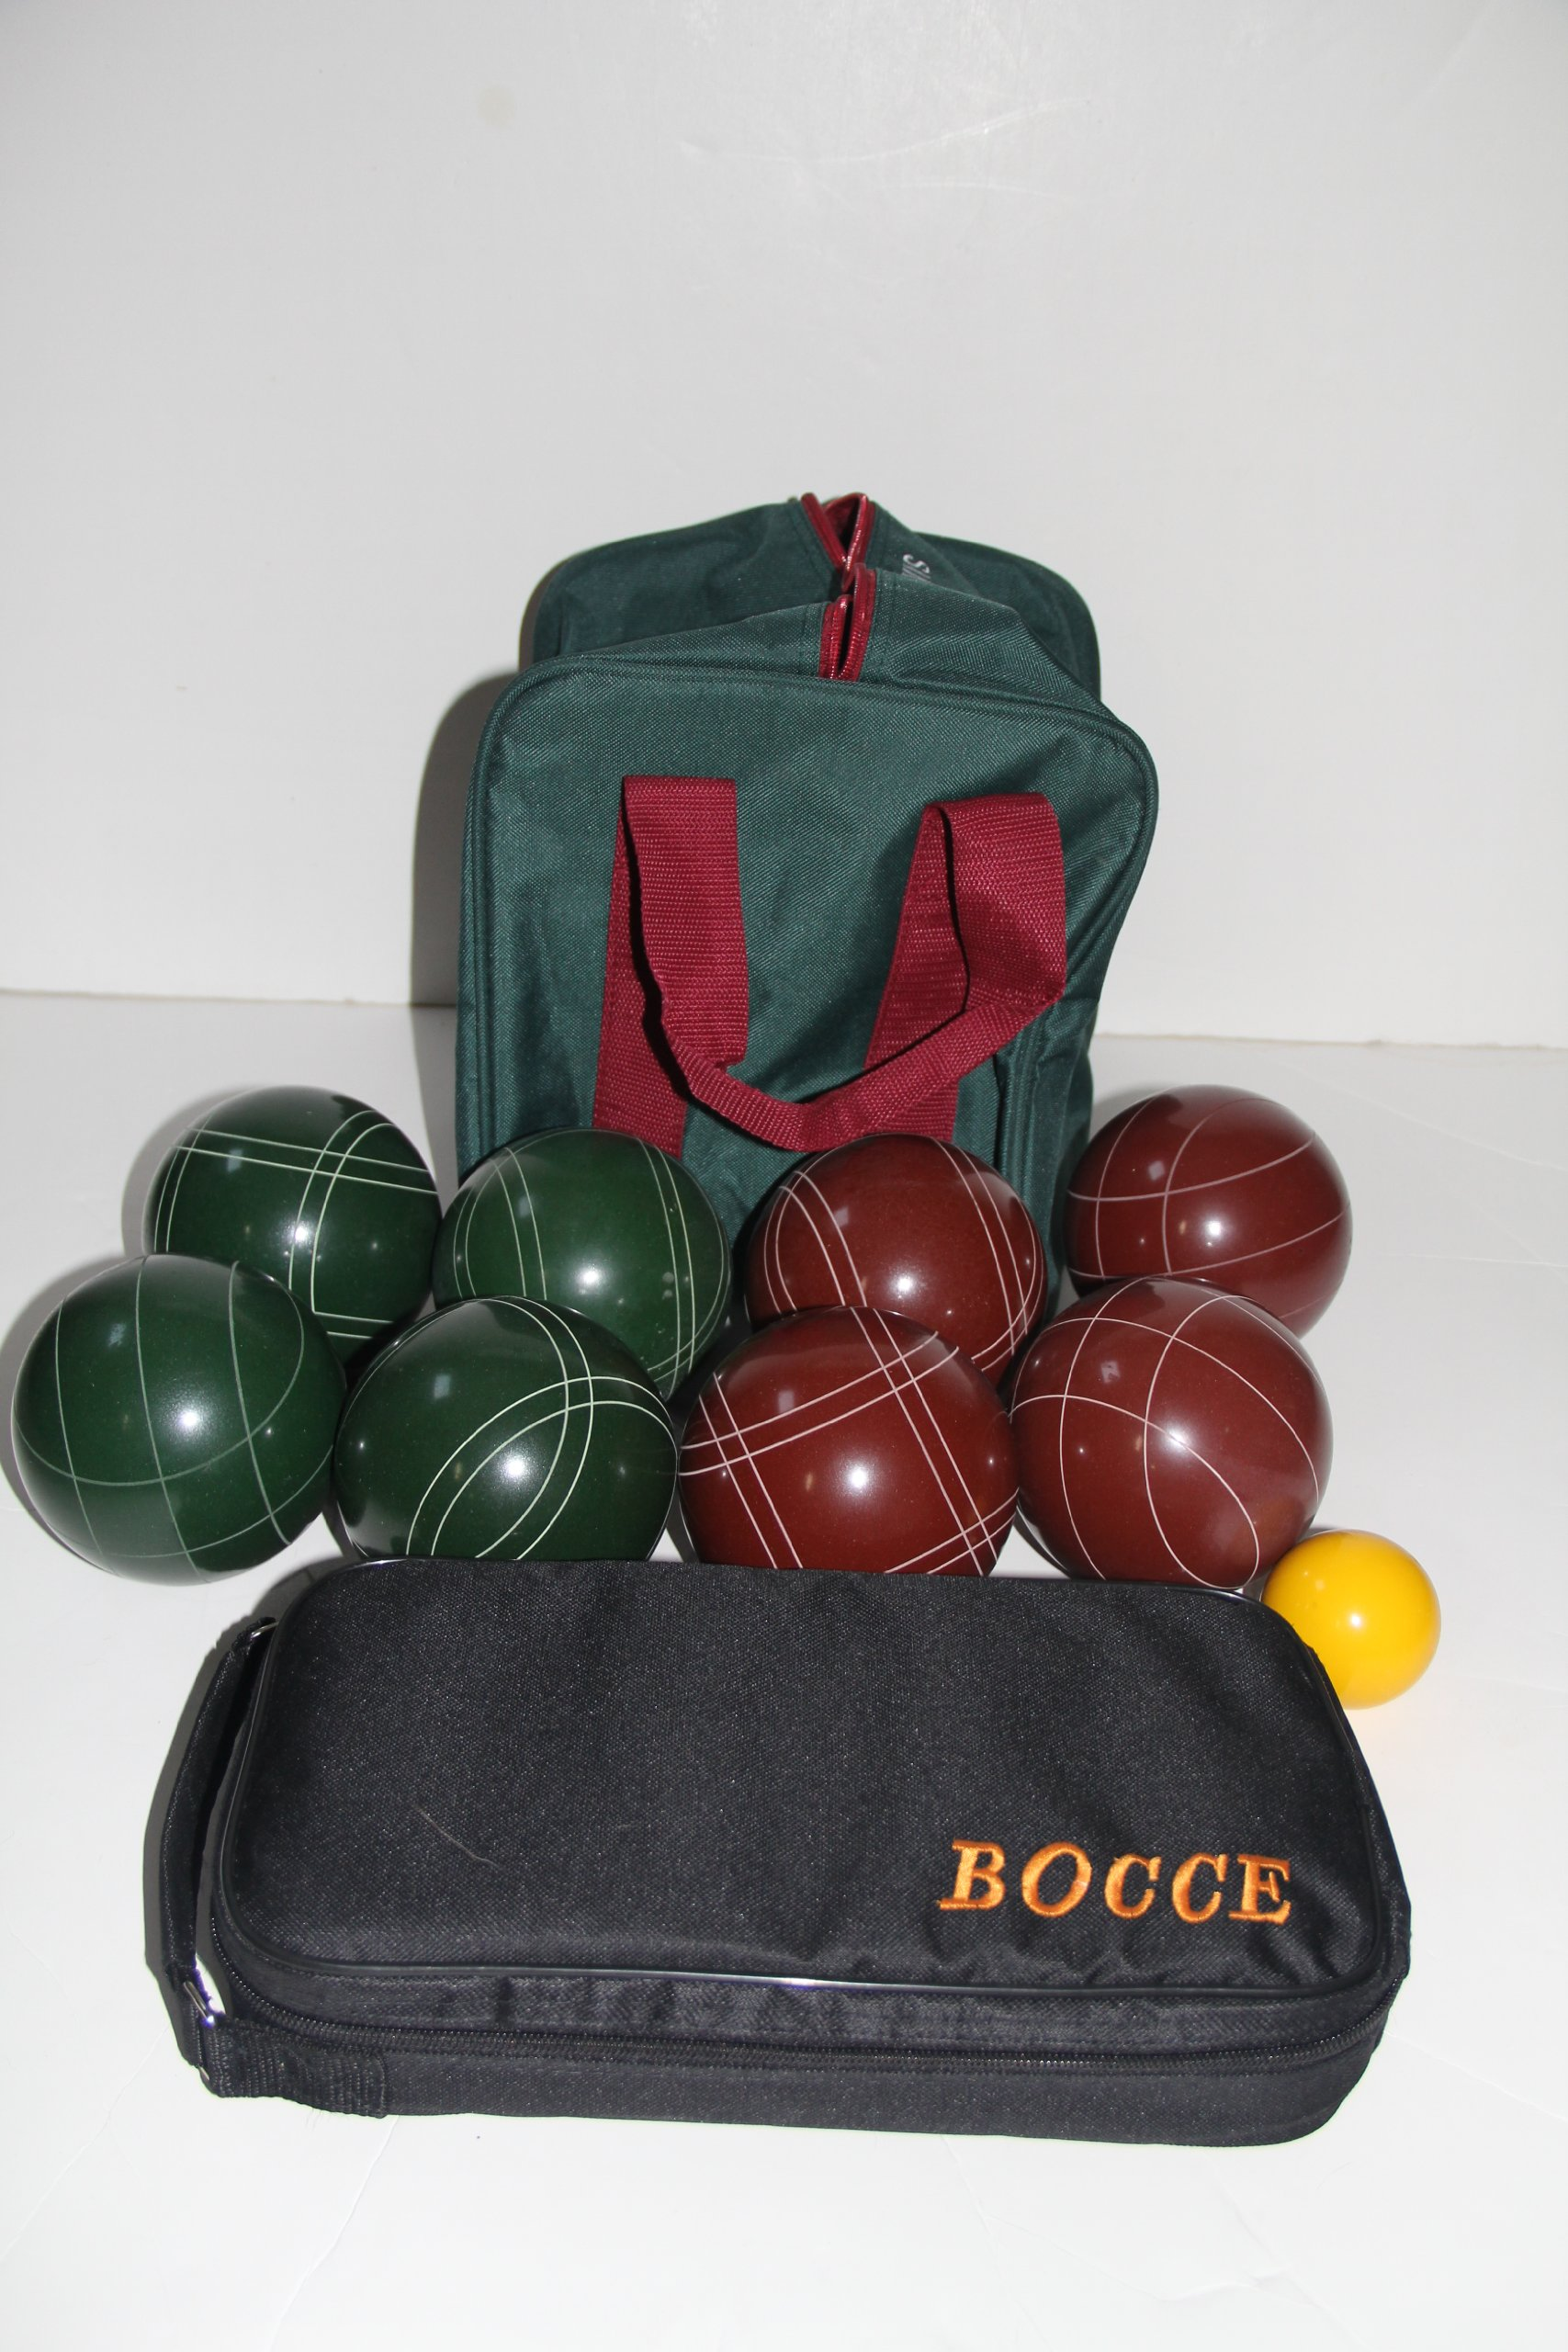 Bocce package - EPCO 107mm red and green bocce set and 73mm metal Petanque set by BuyBocceBalls